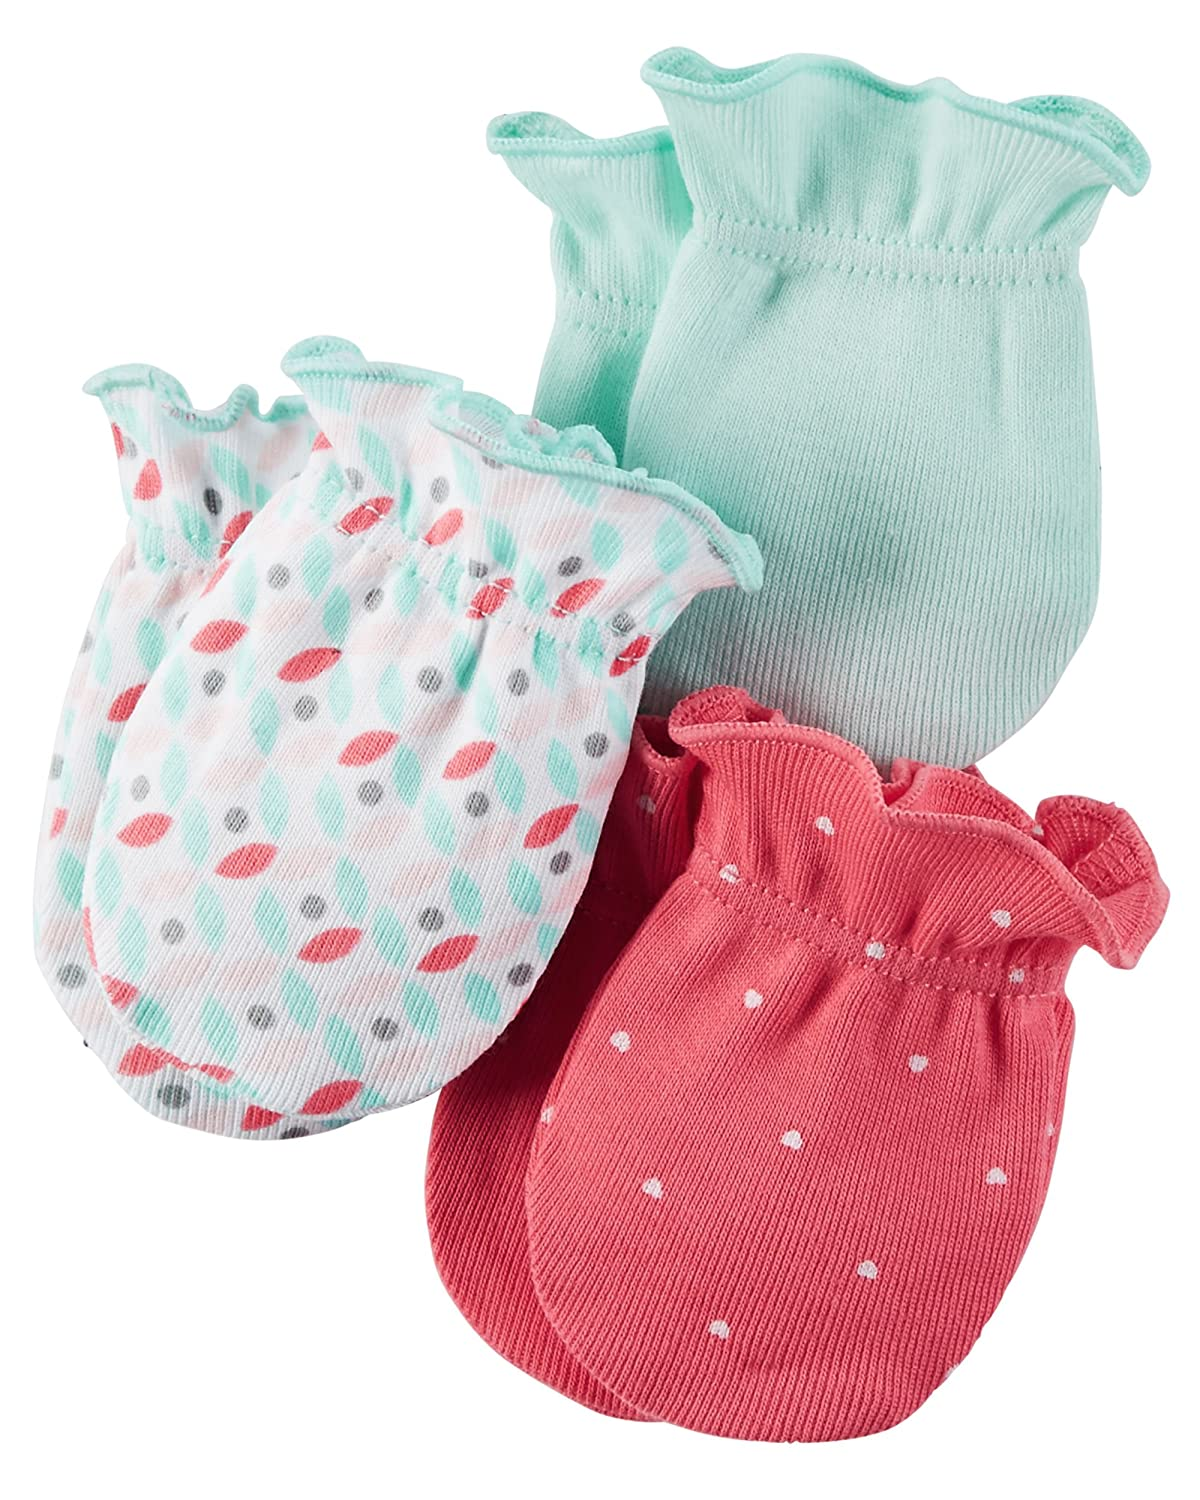 Carters Cotton Baby Boys Mittens Carter's